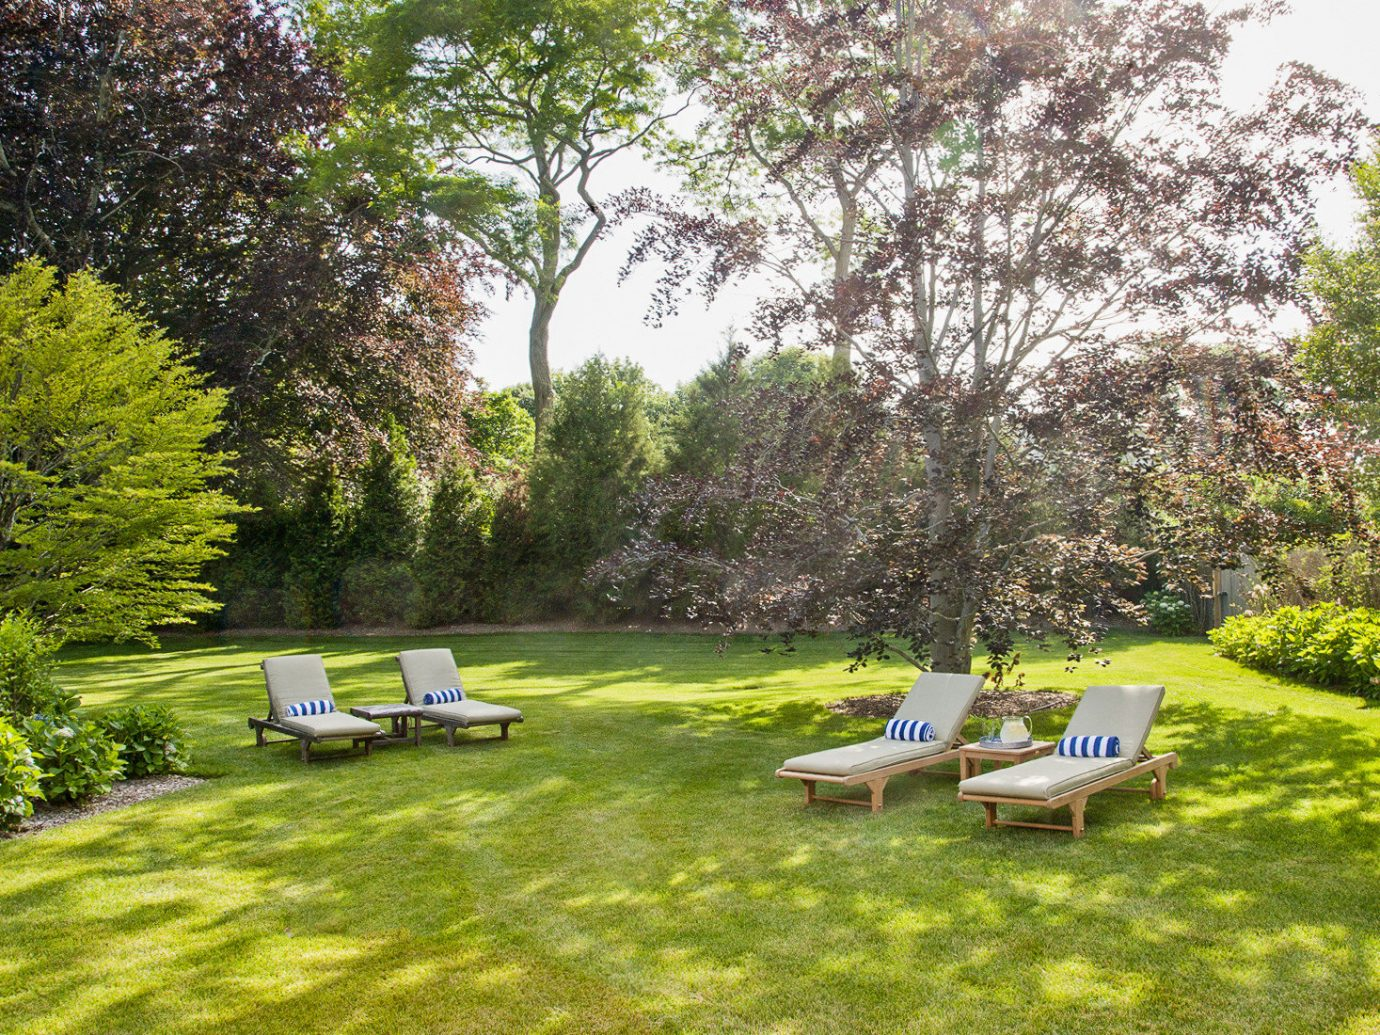 Beach South Fork The Hamptons lawn yard property Garden plant tree grass backyard leaf real estate leisure park estate landscape house landscaping meadow spring recreation outdoor structure outdoor furniture land lot cottage